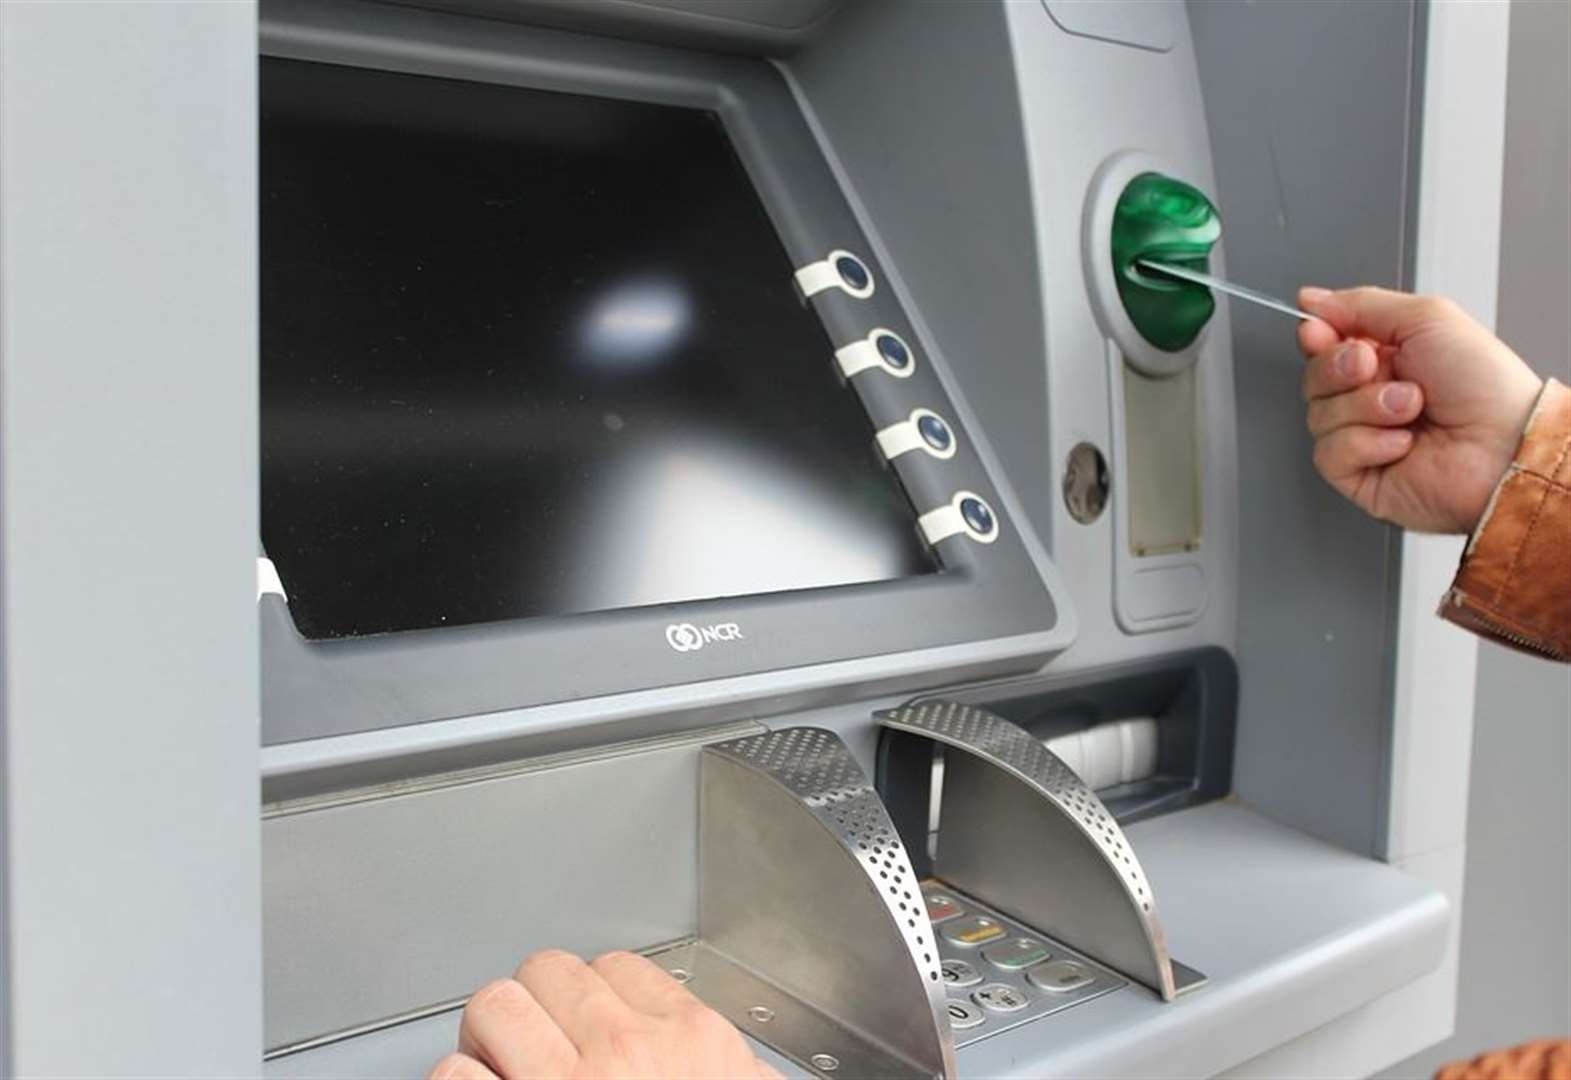 Men charged with £120k ATM cash thefts